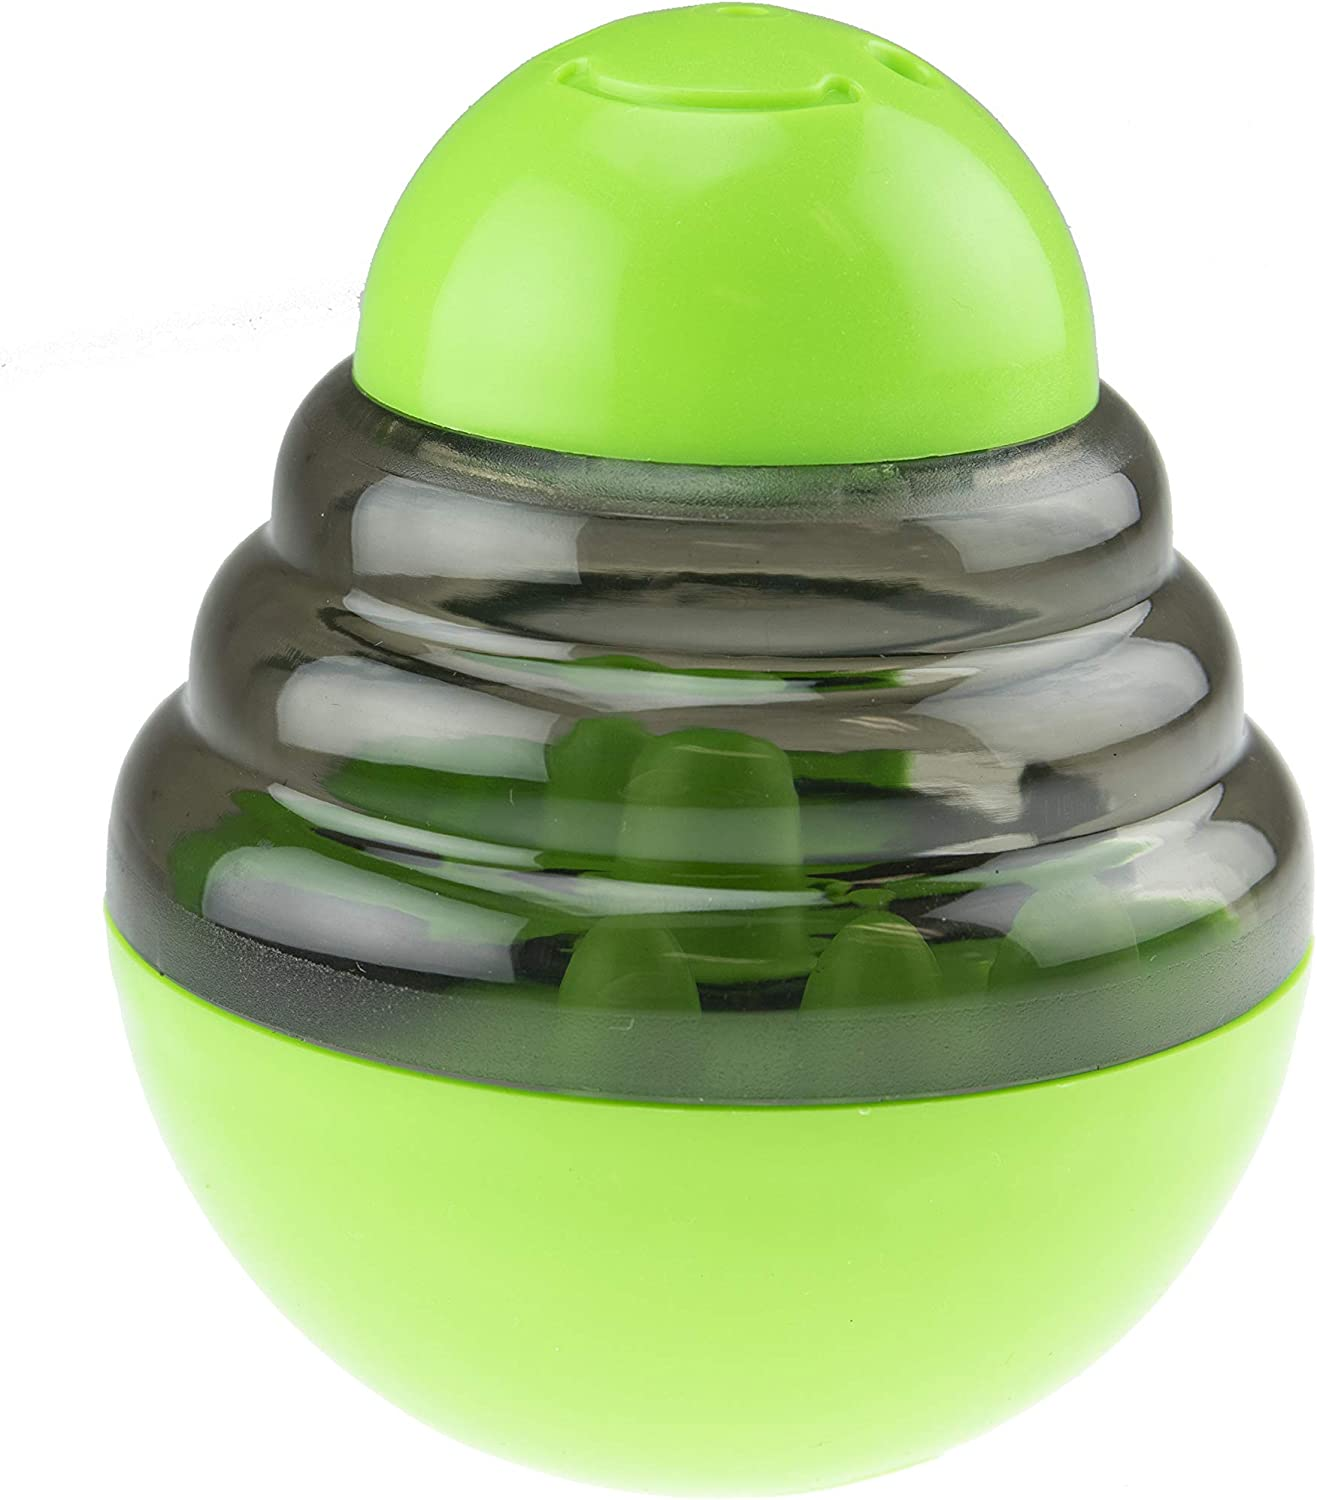 Greatest Pet Shop Food Ball Toy Tumbler for Dogs and Cats, Interactive Pet Treat Dispenser, Green